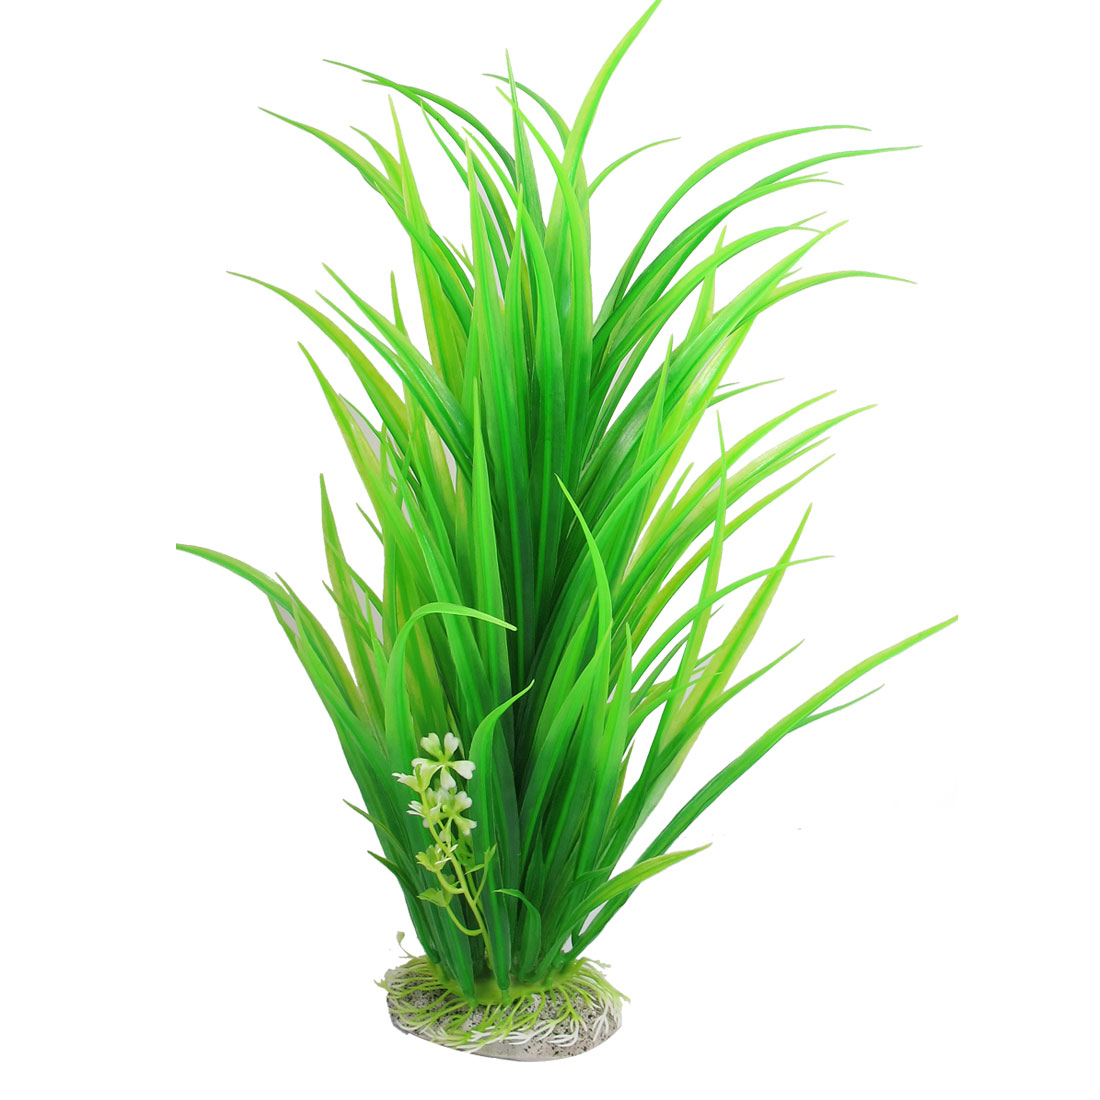 "13.8"" Ceramic Base Green Plastic Pointed Leaf Tank Grass Ornament Aquatic Plant"